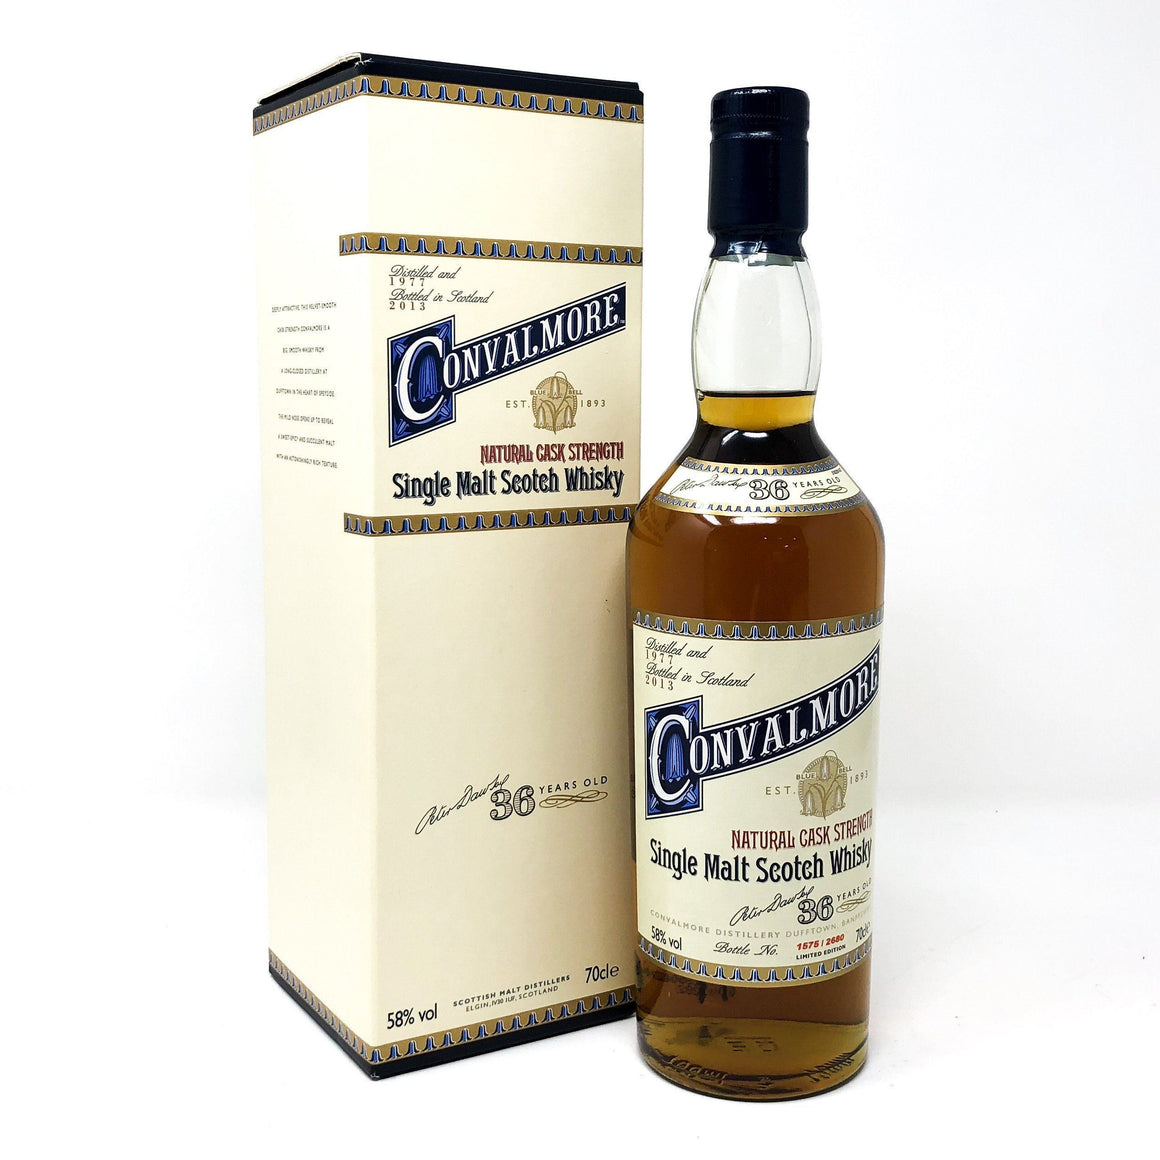 Whisky - Convalmore 36 Year Old Cask Strength